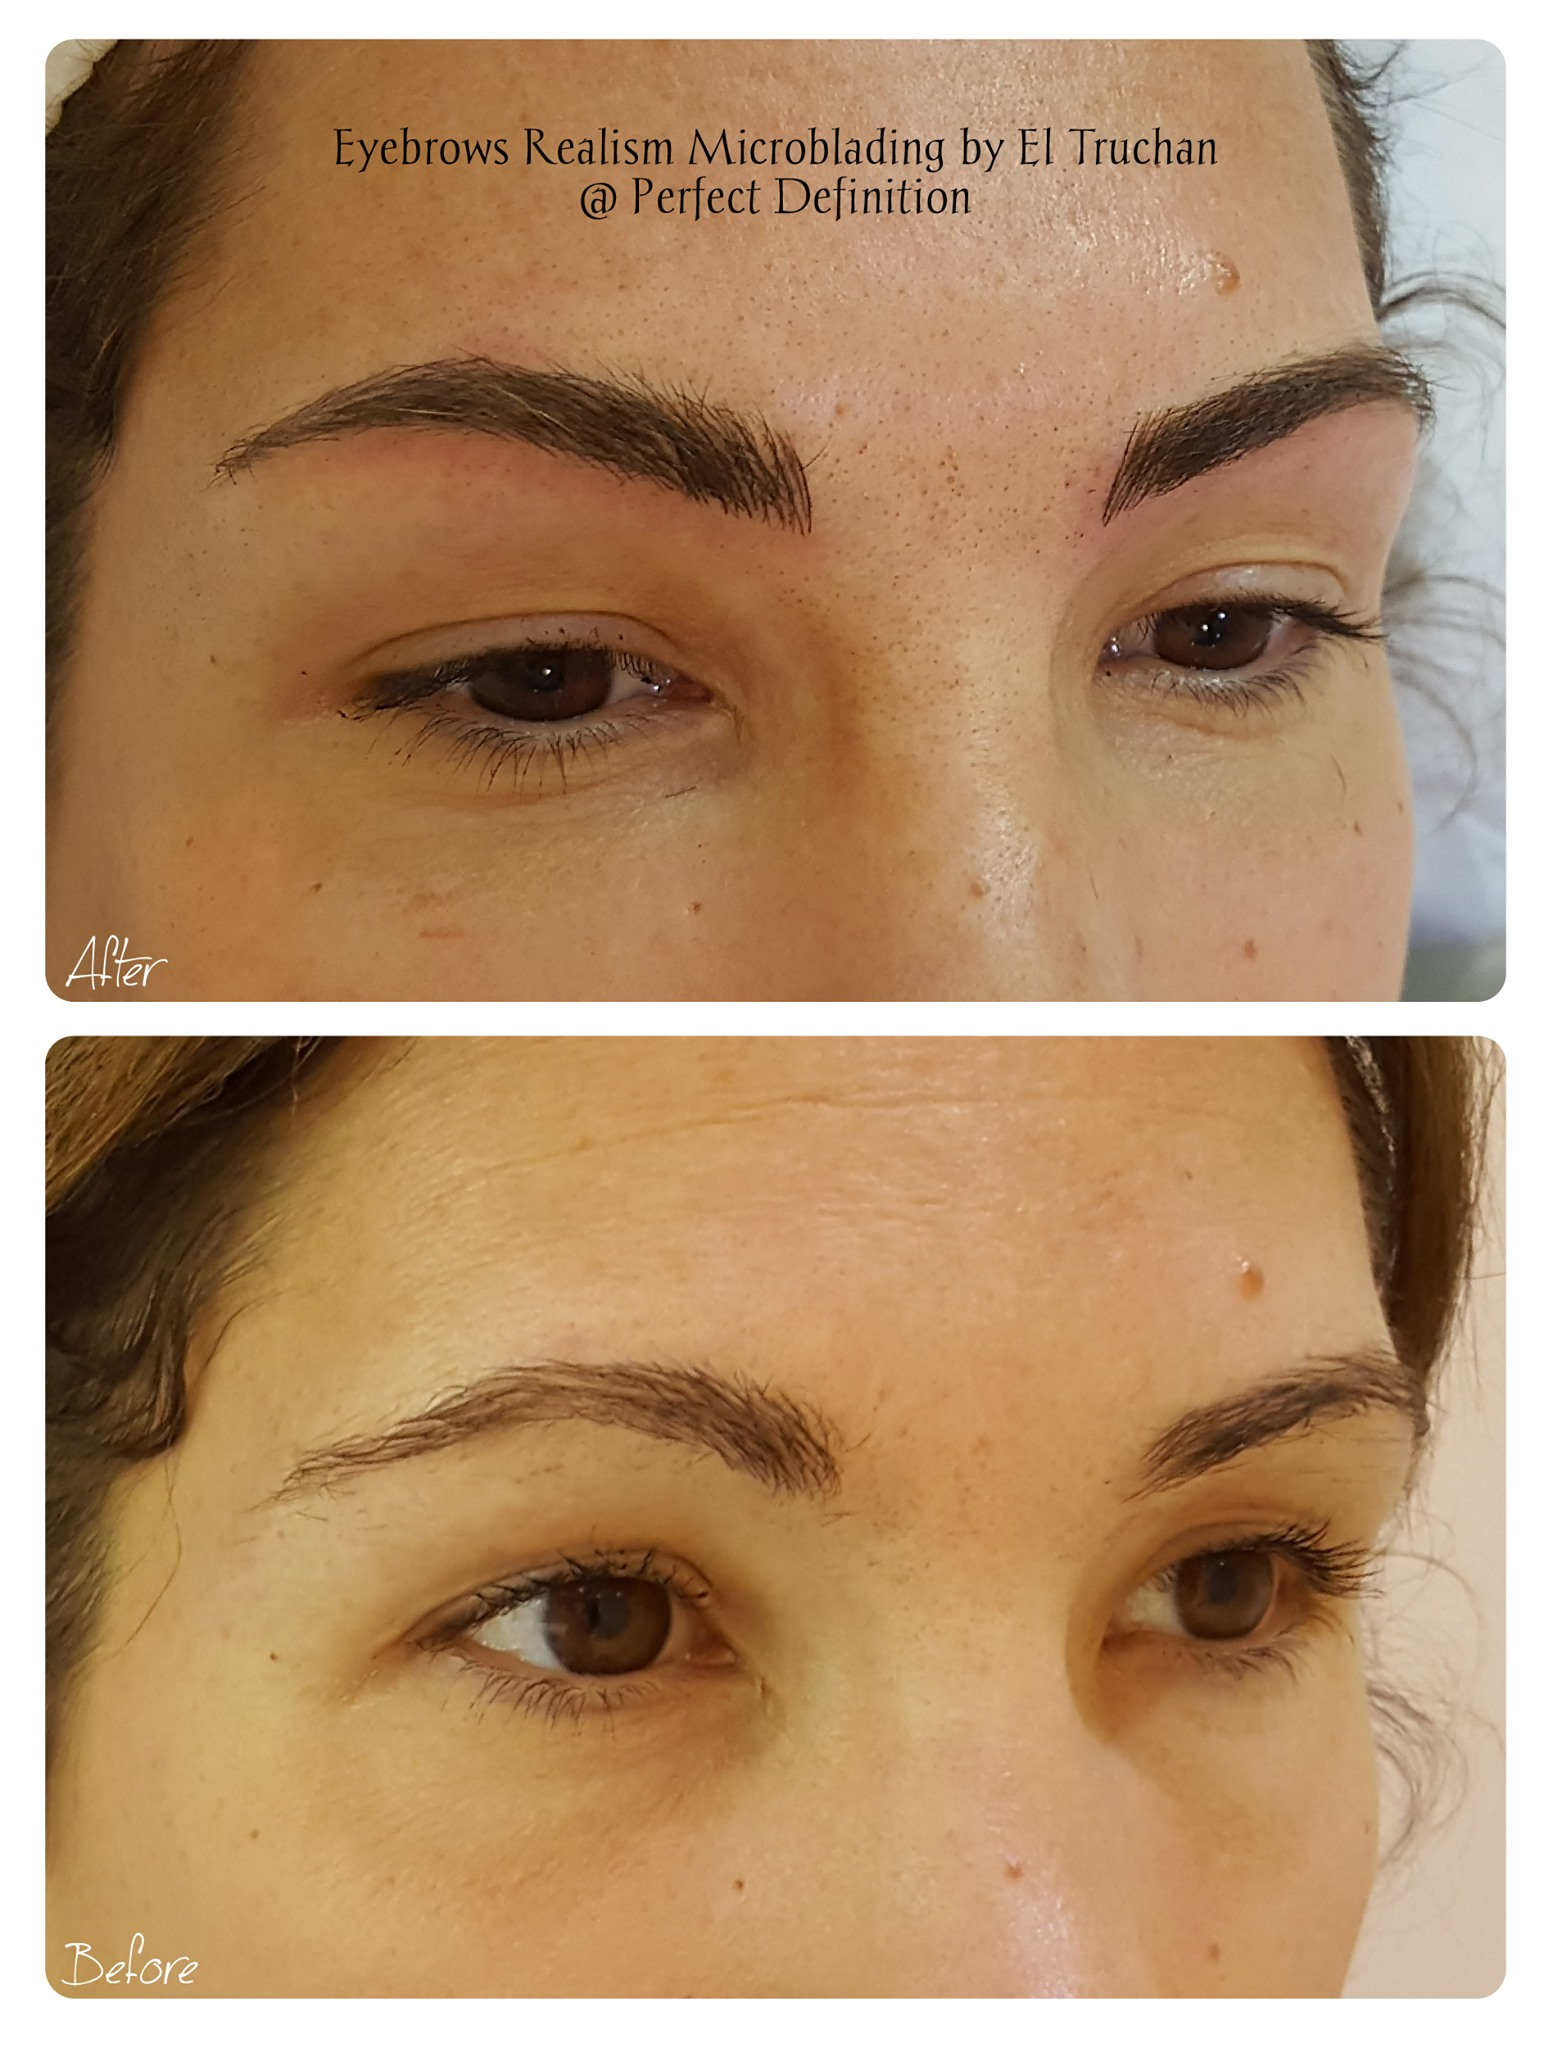 Eyebrows Realism Microblading by El Truc